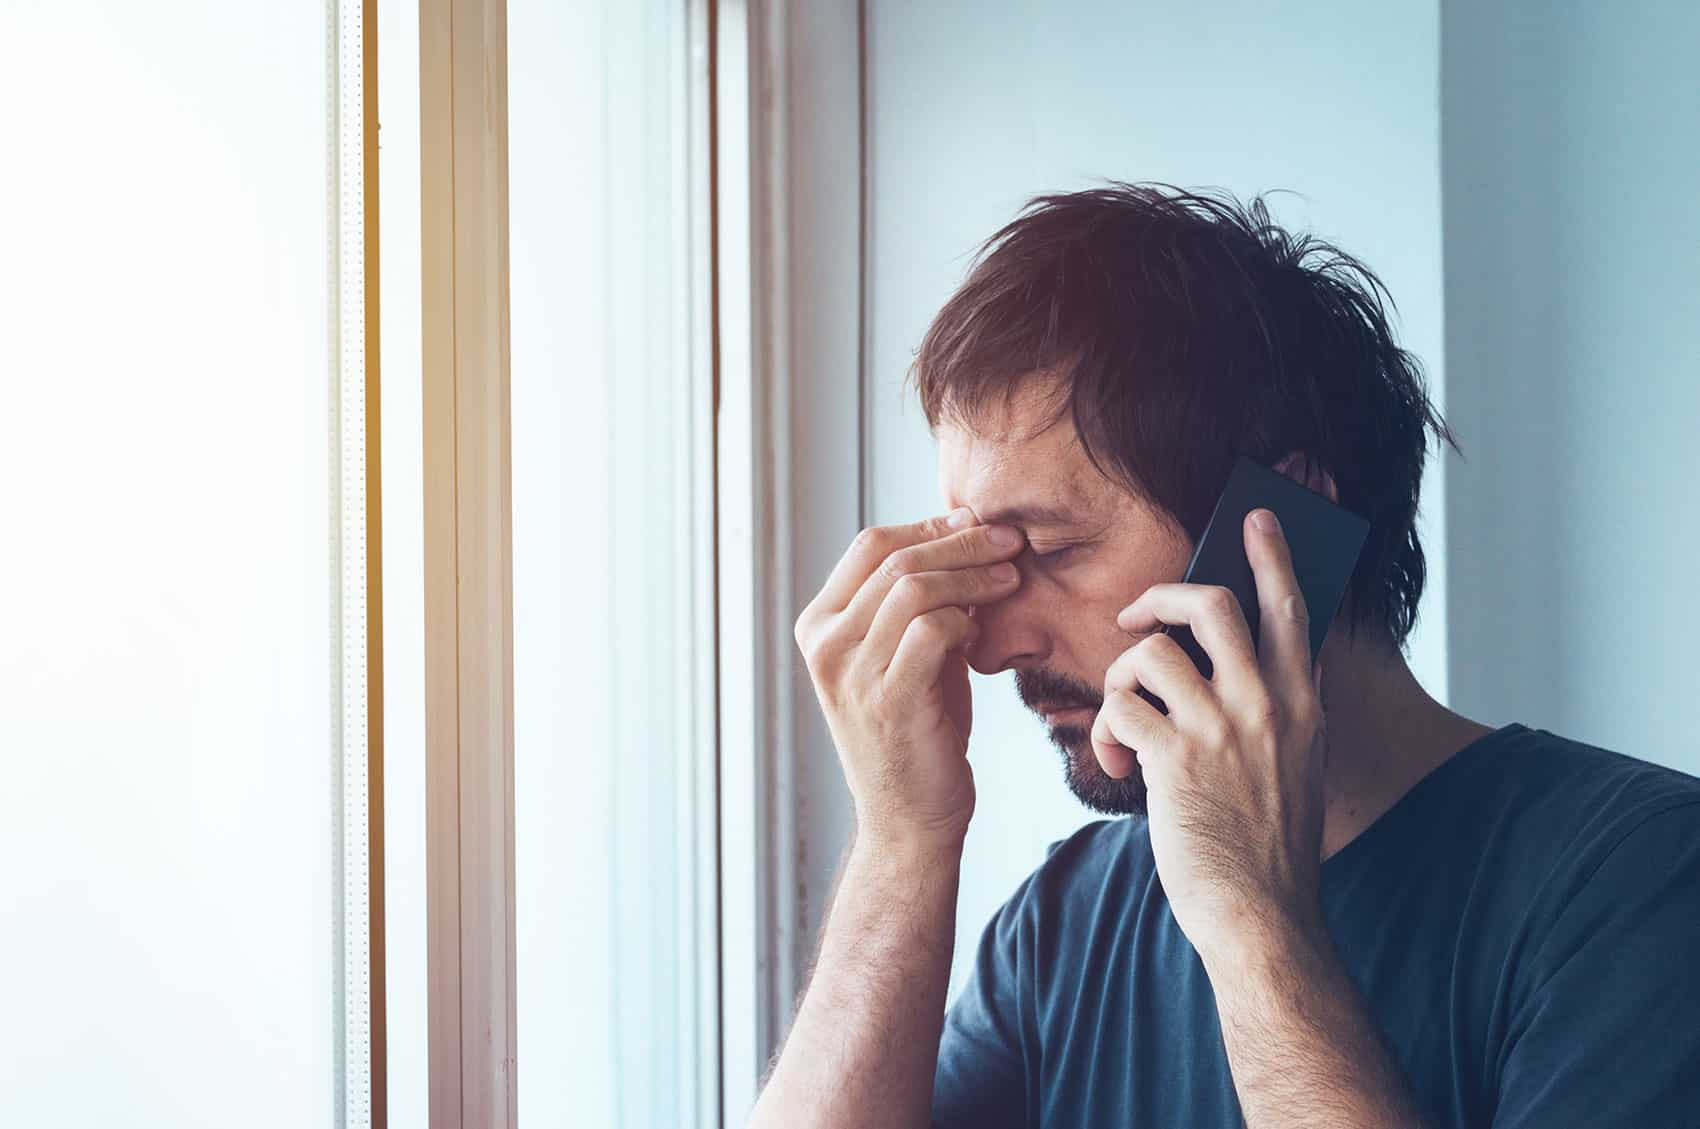 man holding the bridge of his nose as if in stress while he is talking on his cell phone